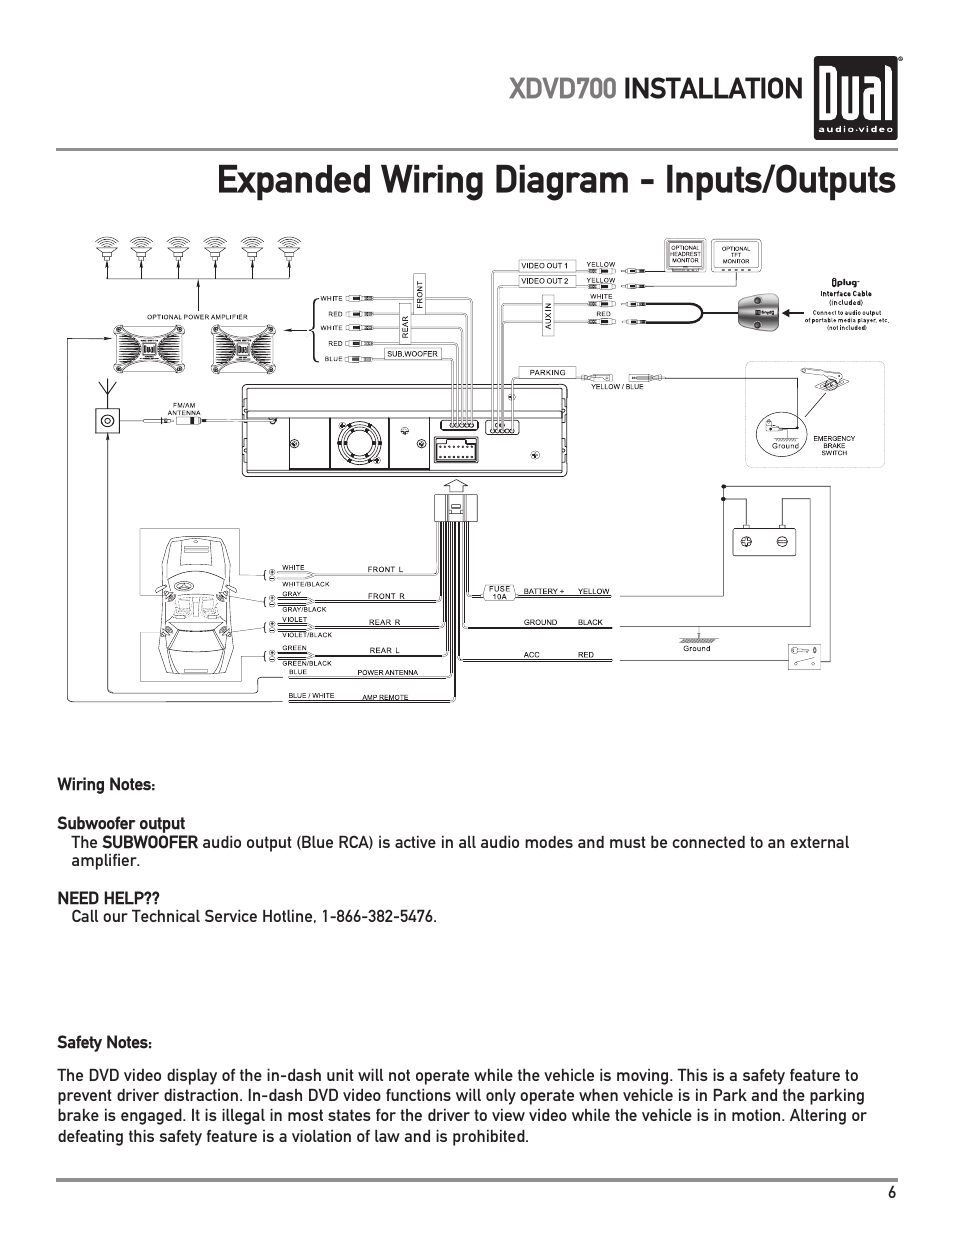 medium resolution of expanded wiring diagram inputs outputs xdvd700 installation dual xdvd700 user manual page 7 56